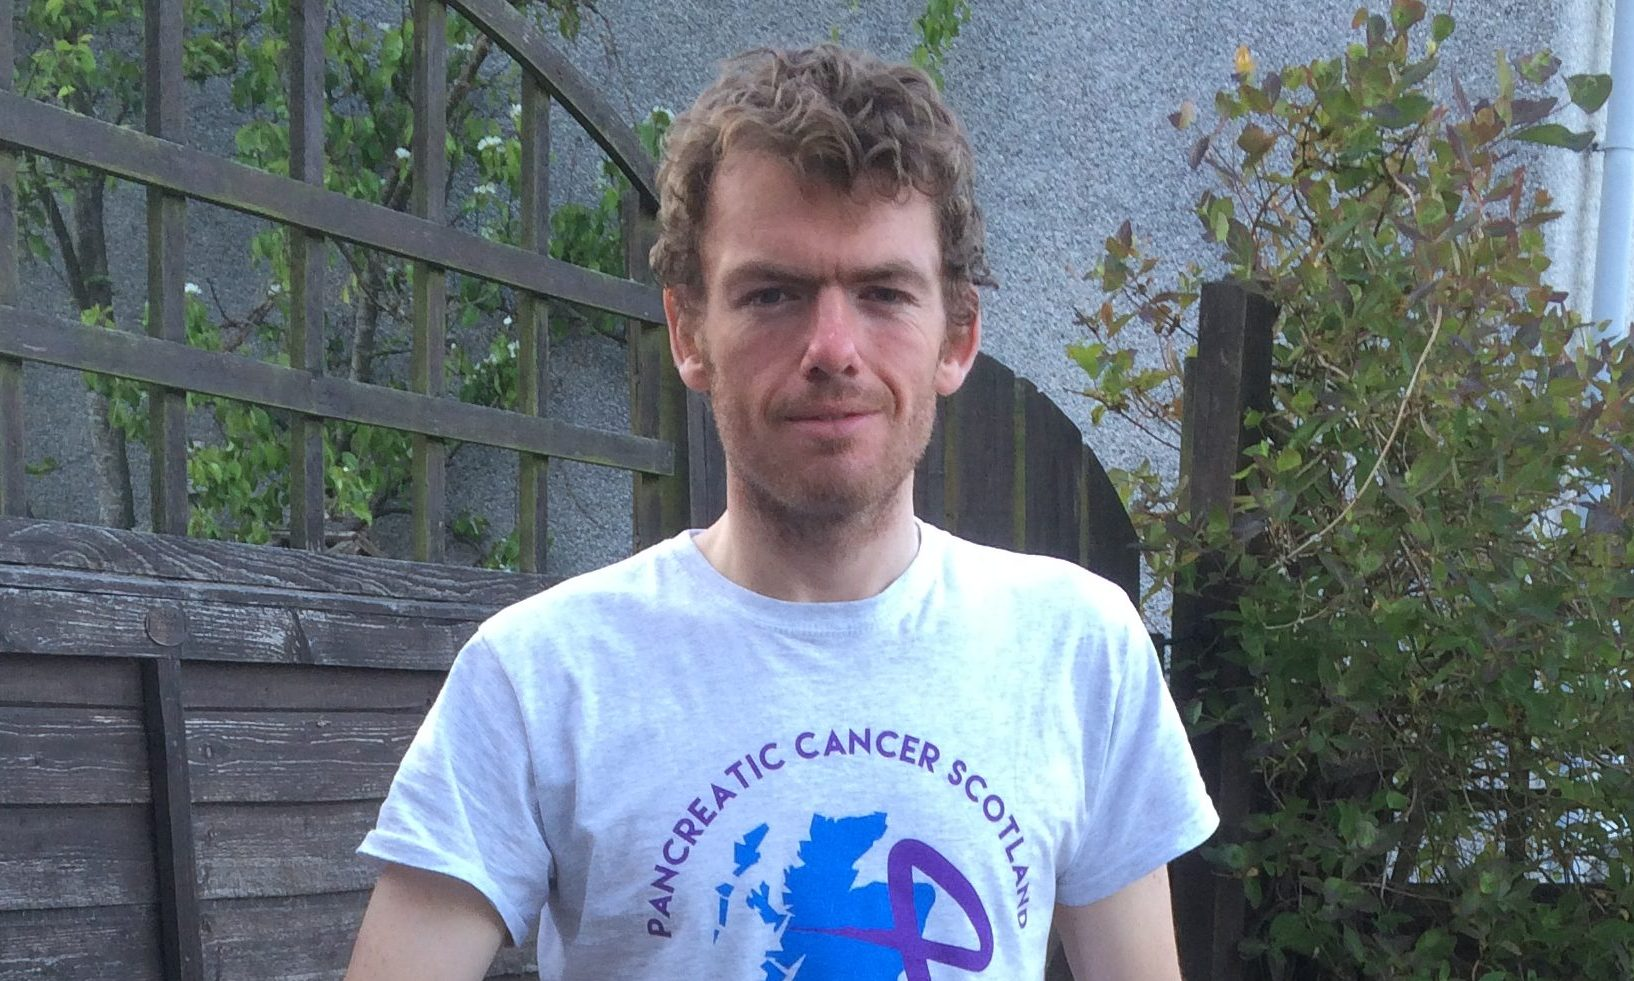 William Gerry, 30, Killin, is aiming to cycle the height of Everest and 12,000 miles in honour of his mother he lost to pancreatic cancer.